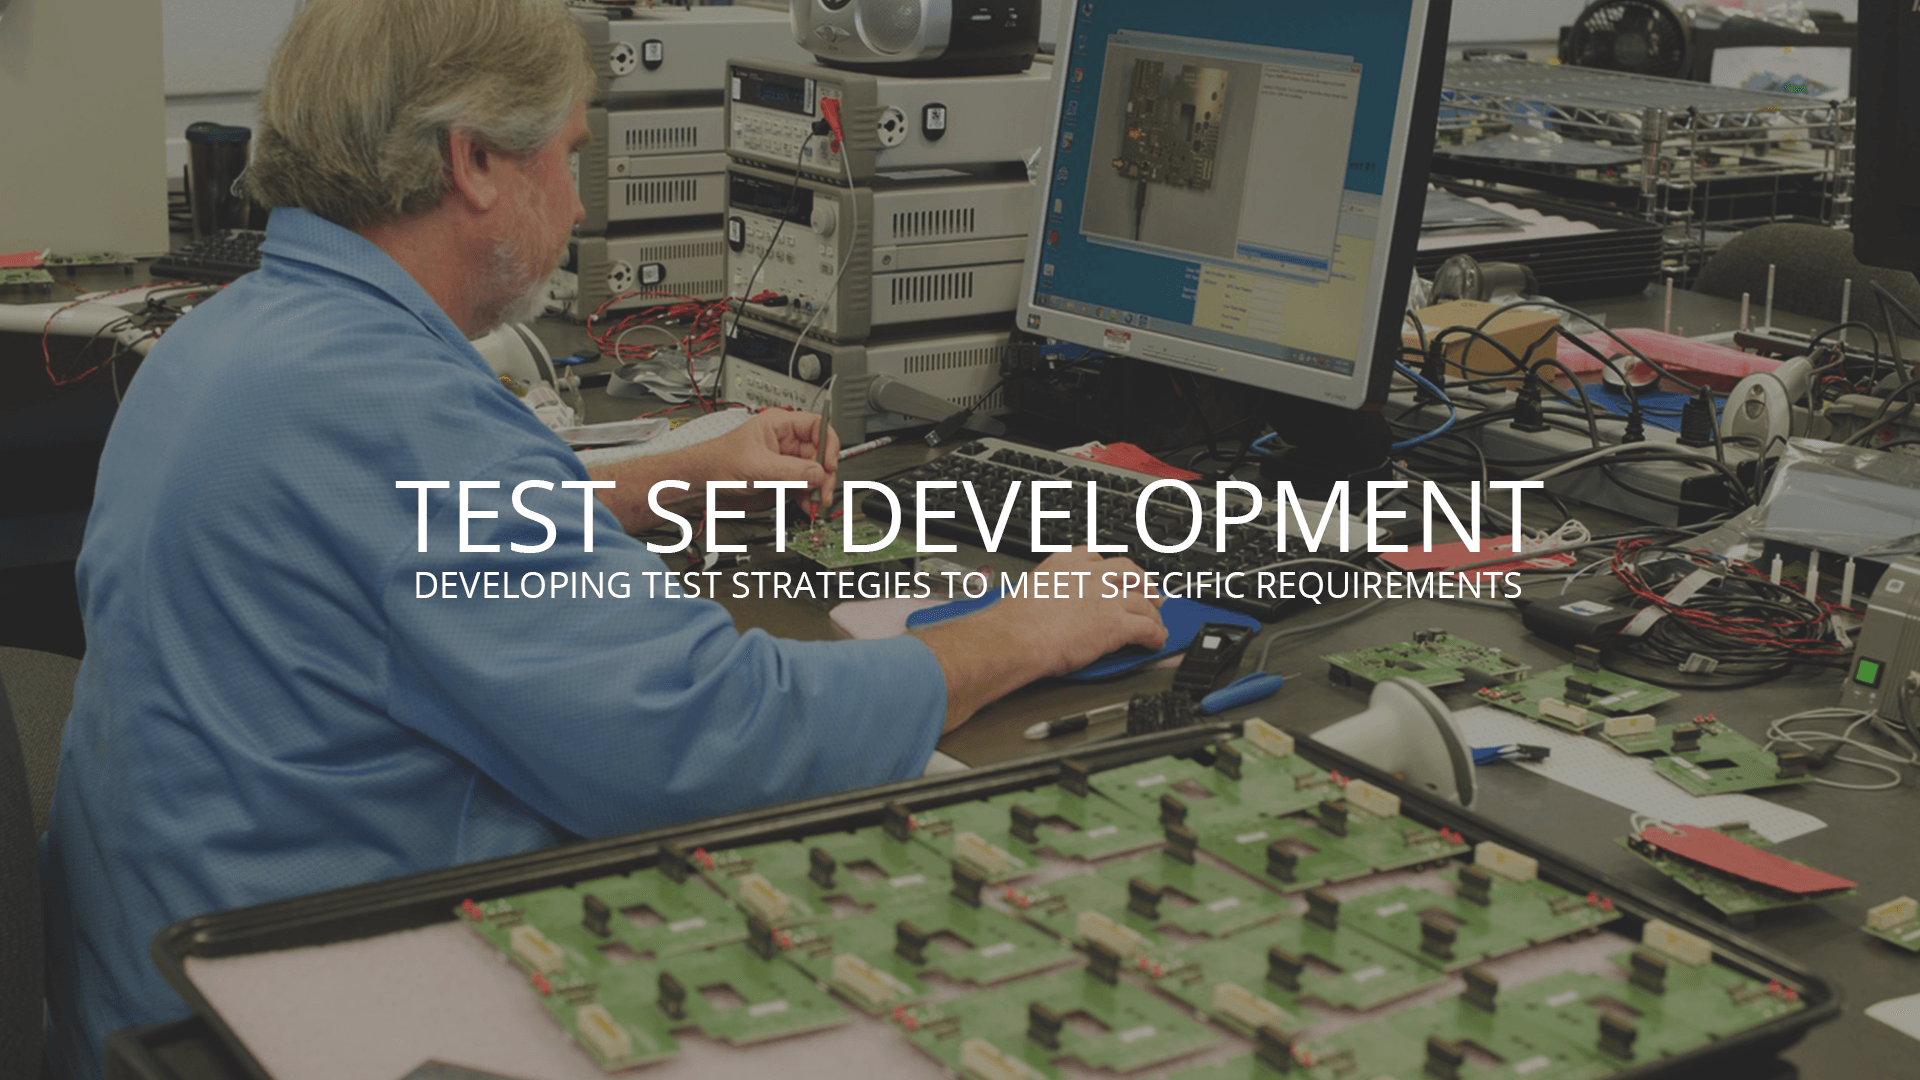 Test Set Development